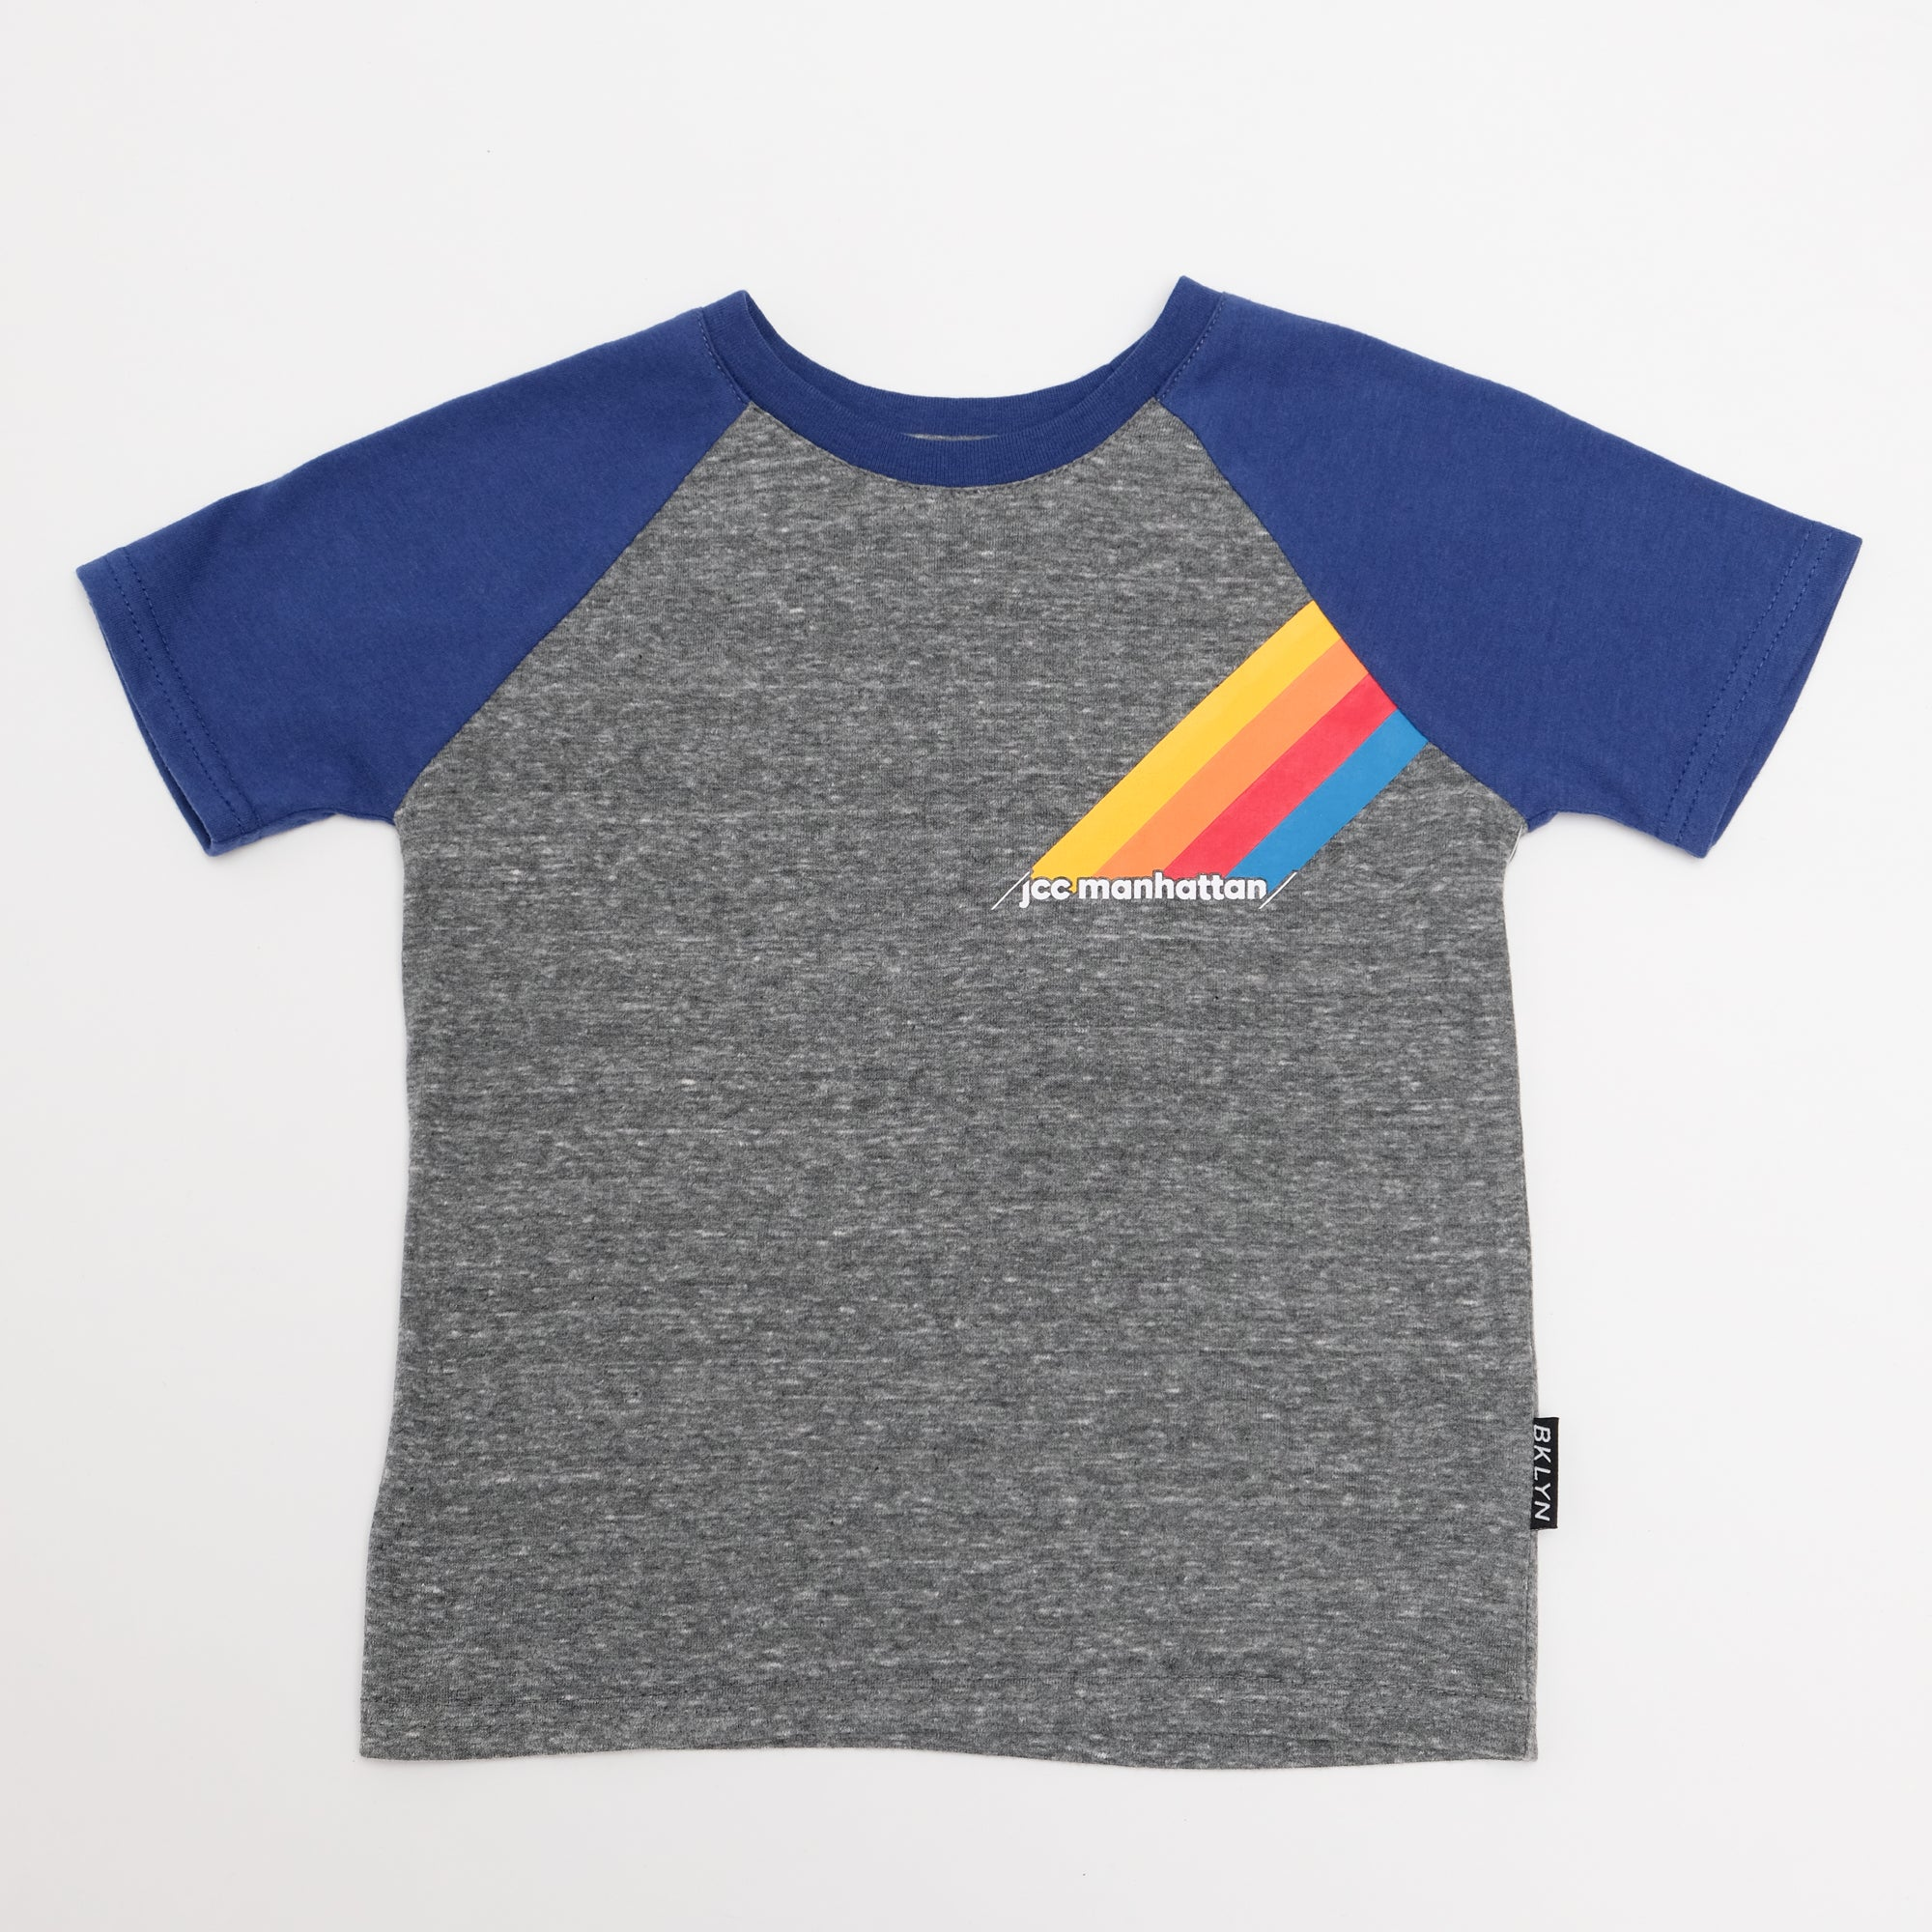 Short Sleeve Tee in Gray with Navy Sleeves